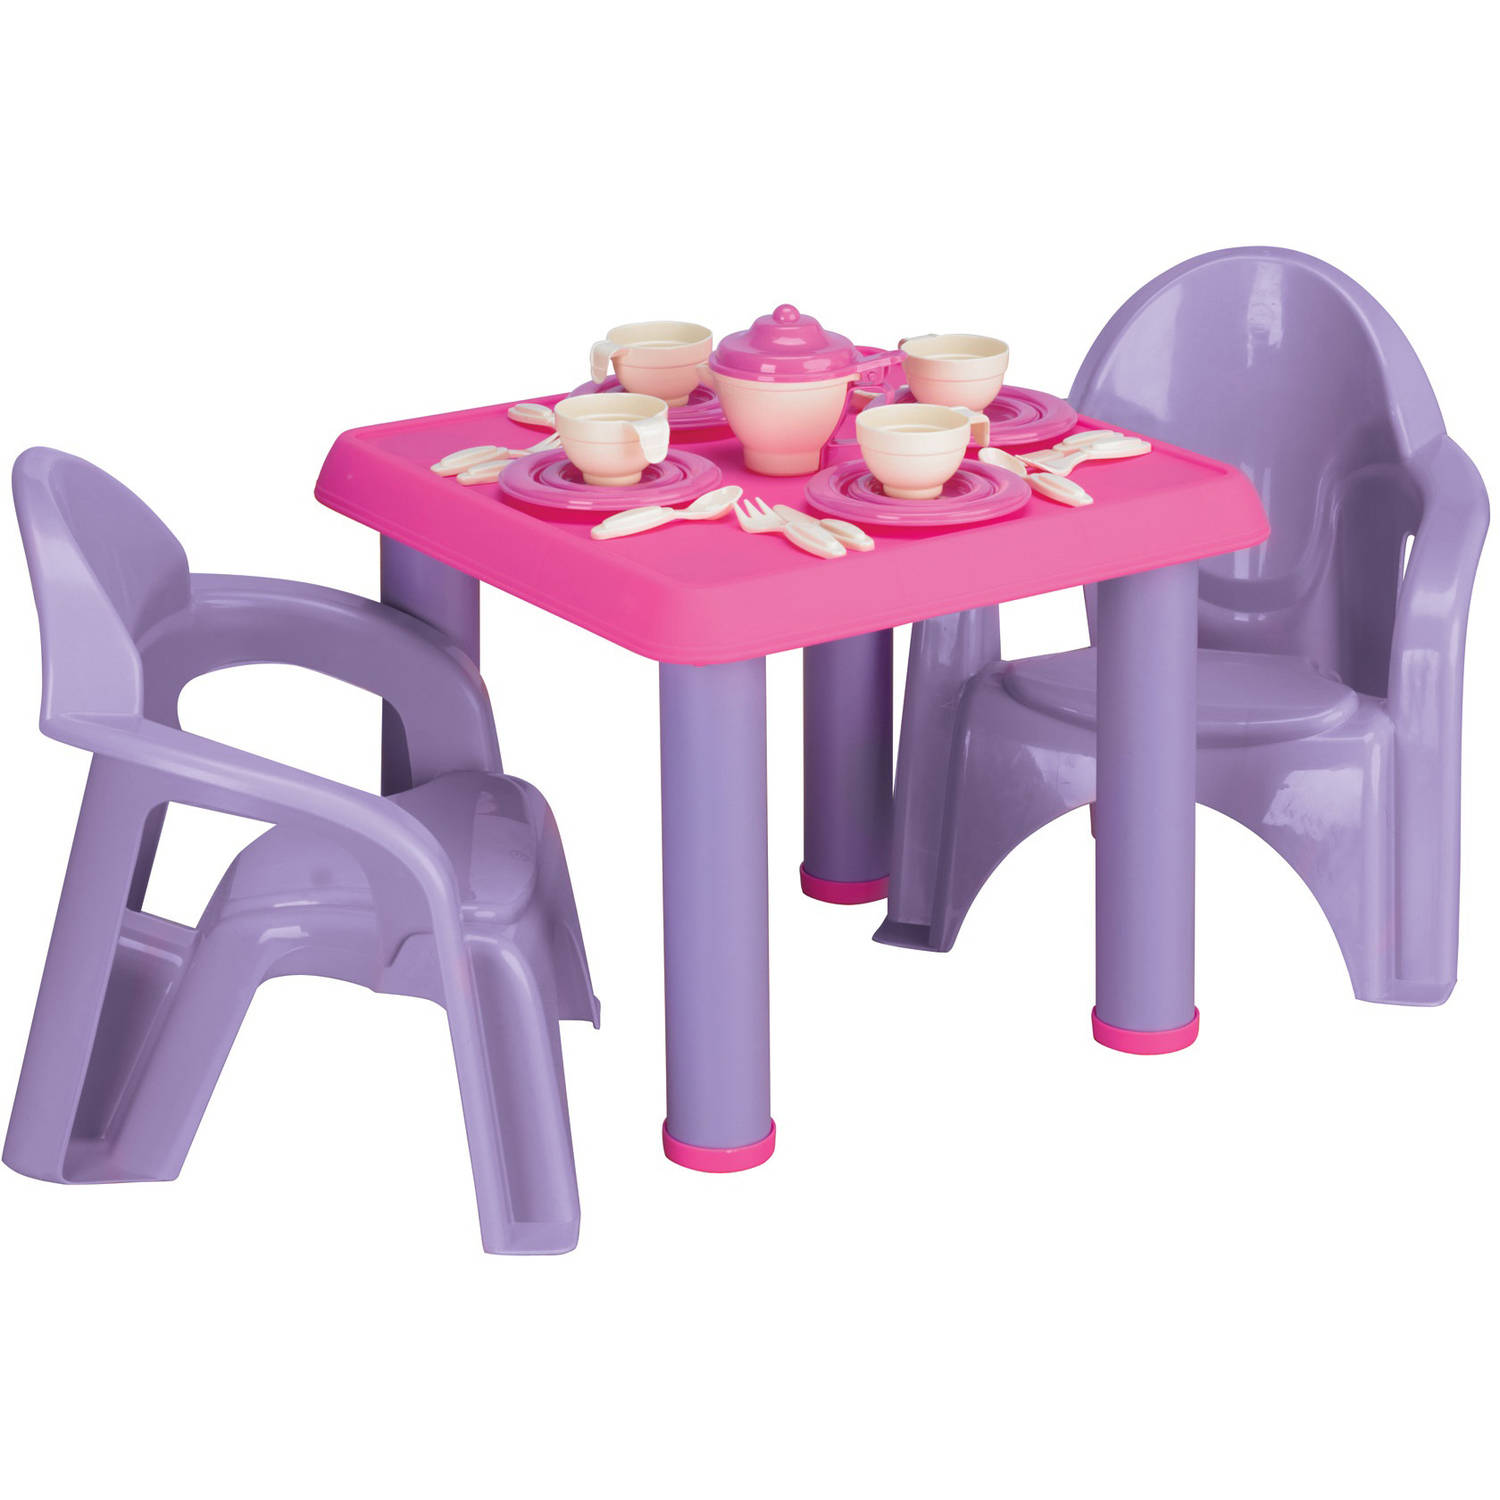 American Plastic Toys - Tea Party Set, 28-Pieces